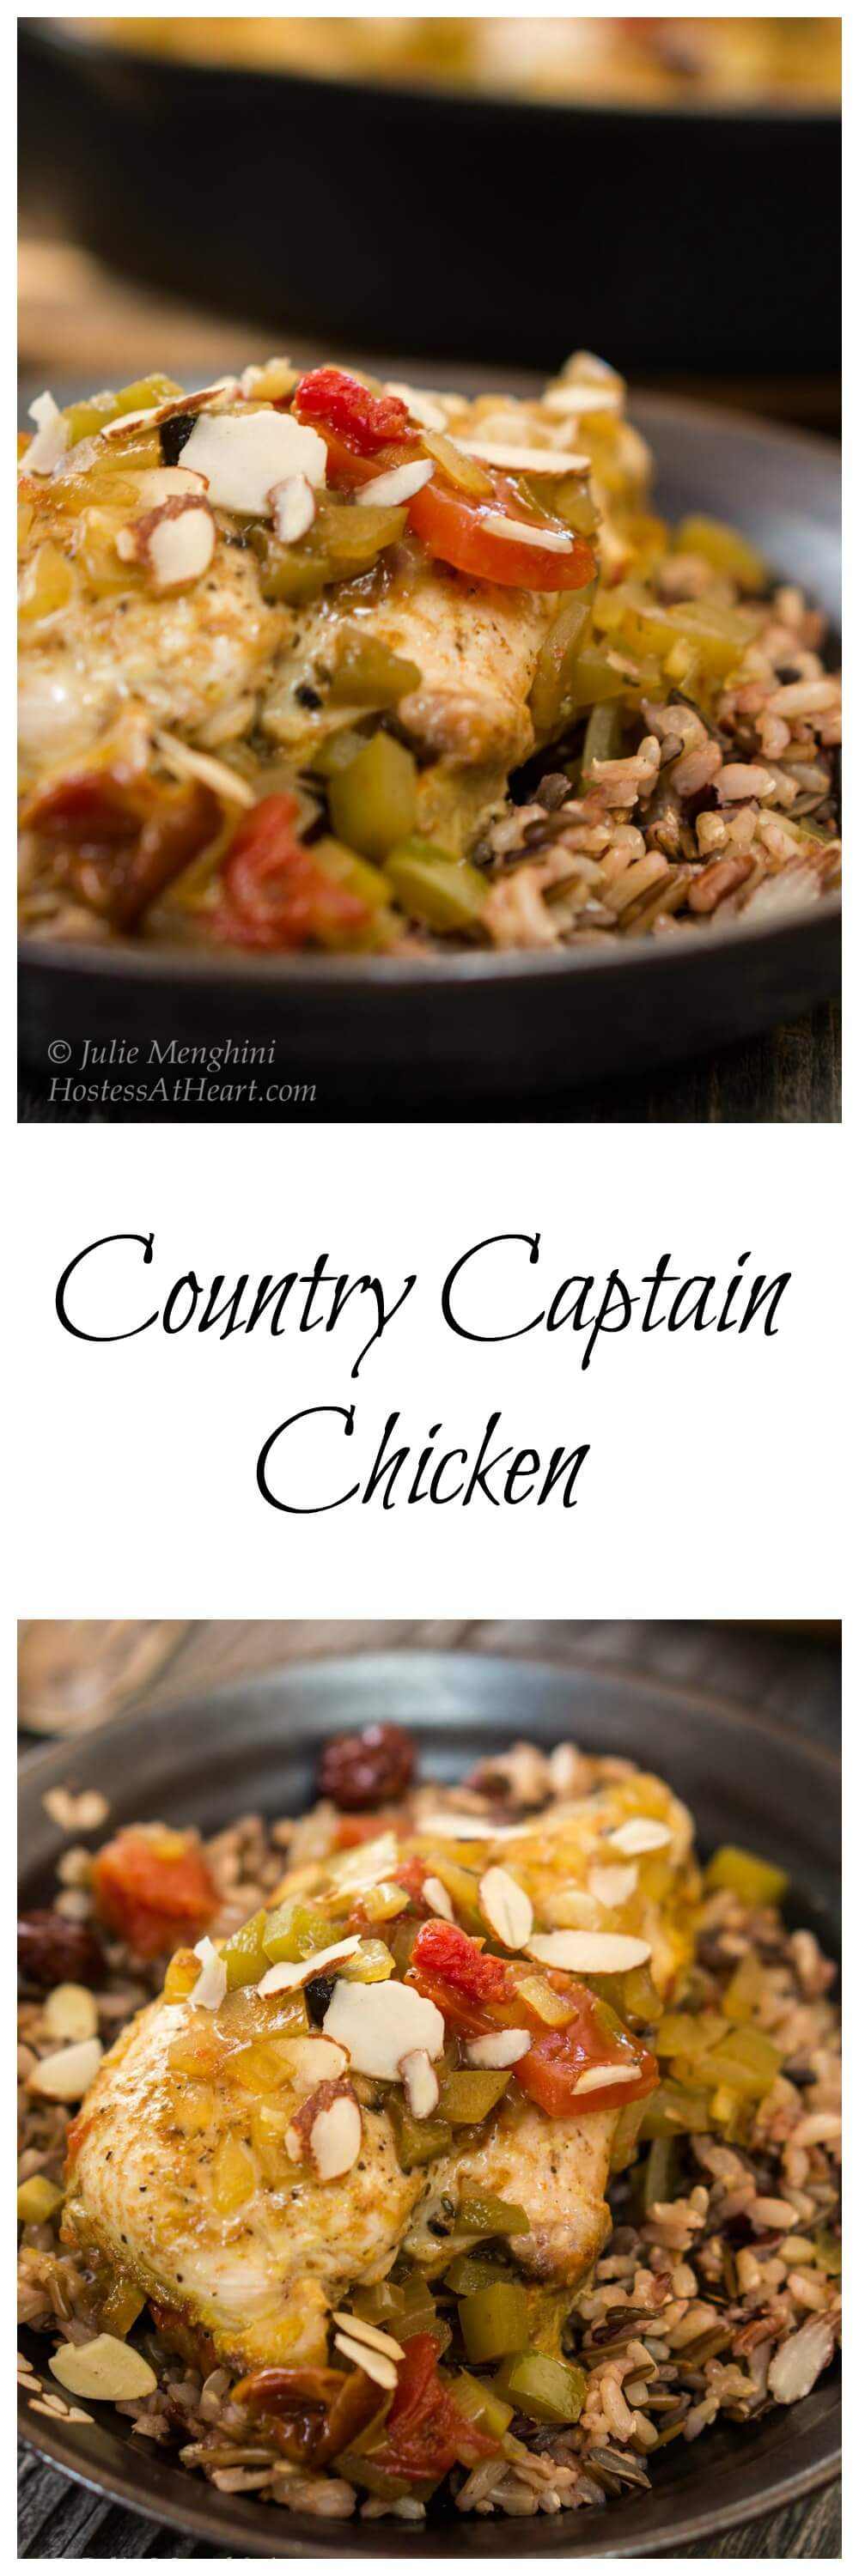 This Country Captain Chicken recipe is easy, delicious, healthy and made it in one pan! It has a lot of history that combines Indian and Southern cultures. #chickenrecipes, #healthyrecipes #chicken #easyrecipes | Dinner Ideas | Weeknight Dinner